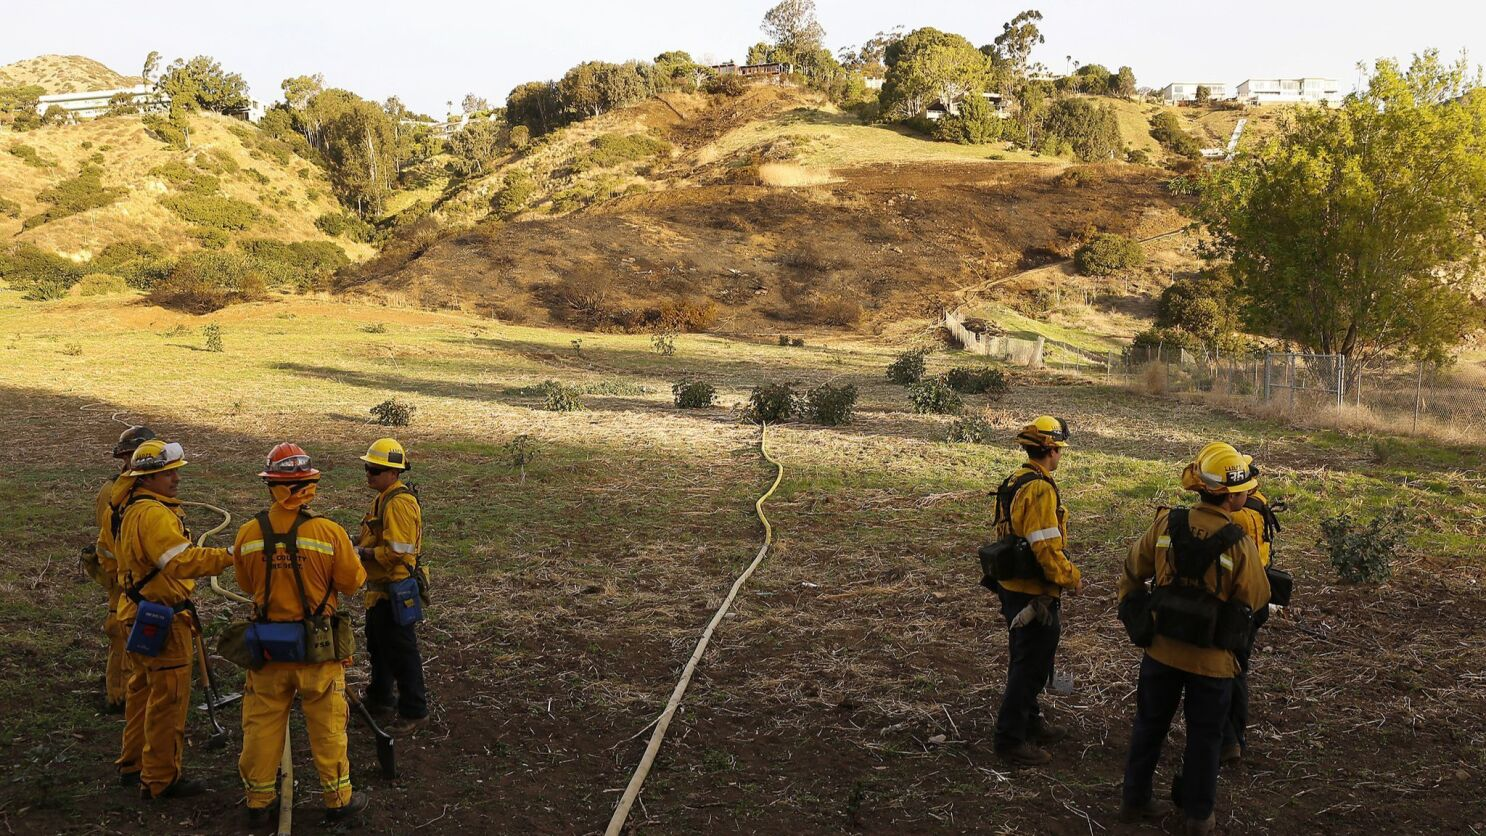 L A  County firefighters earn massive overtime pay, busting budgets